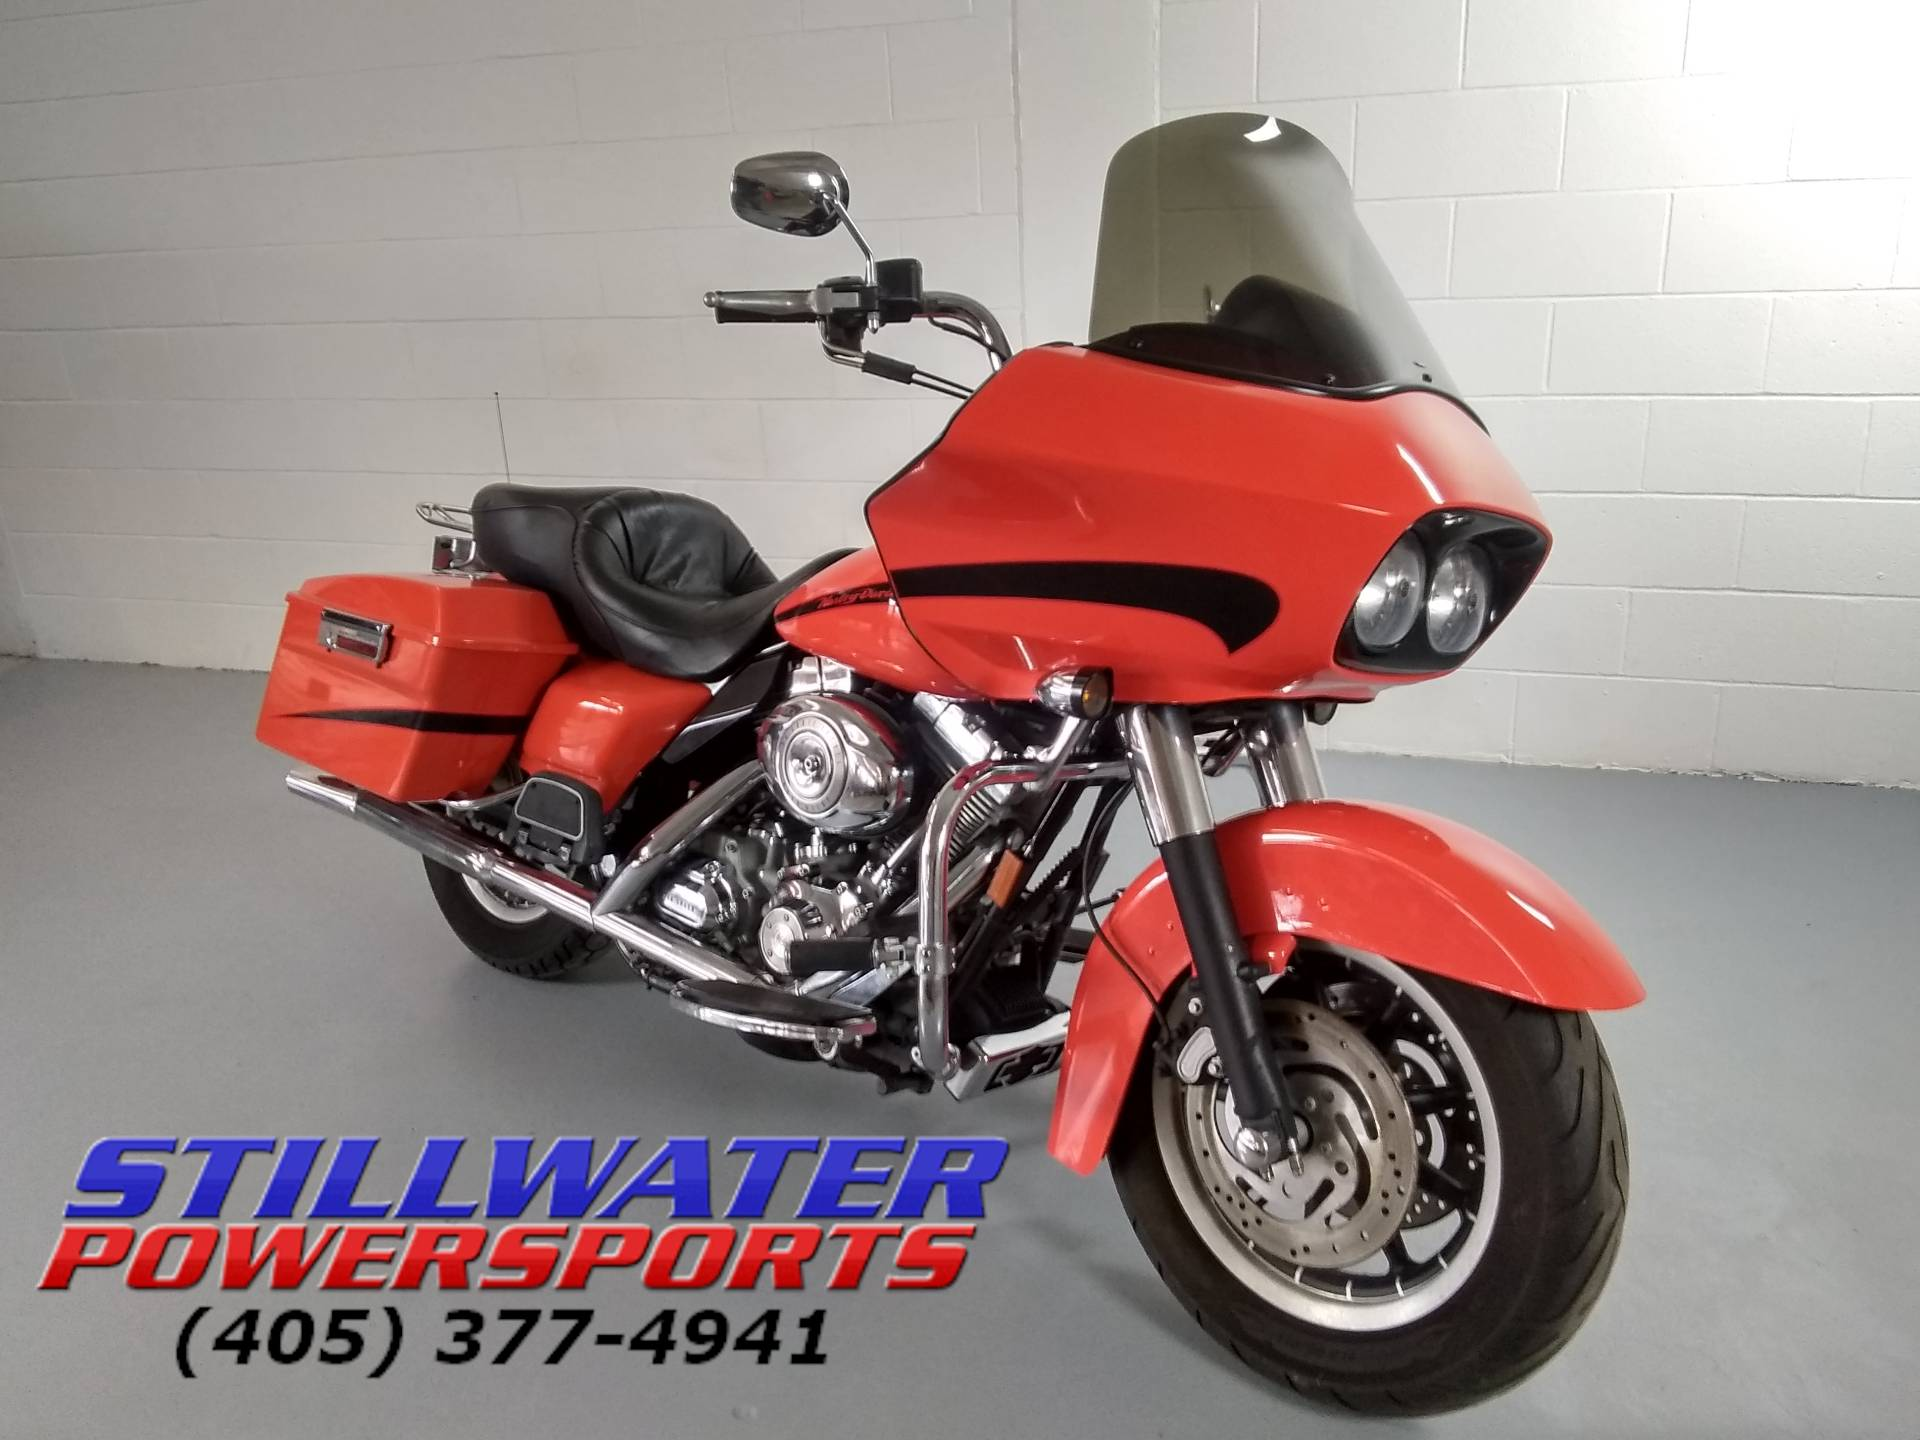 2007 Harley-Davidson Road Glide® in Stillwater, Oklahoma - Photo 2